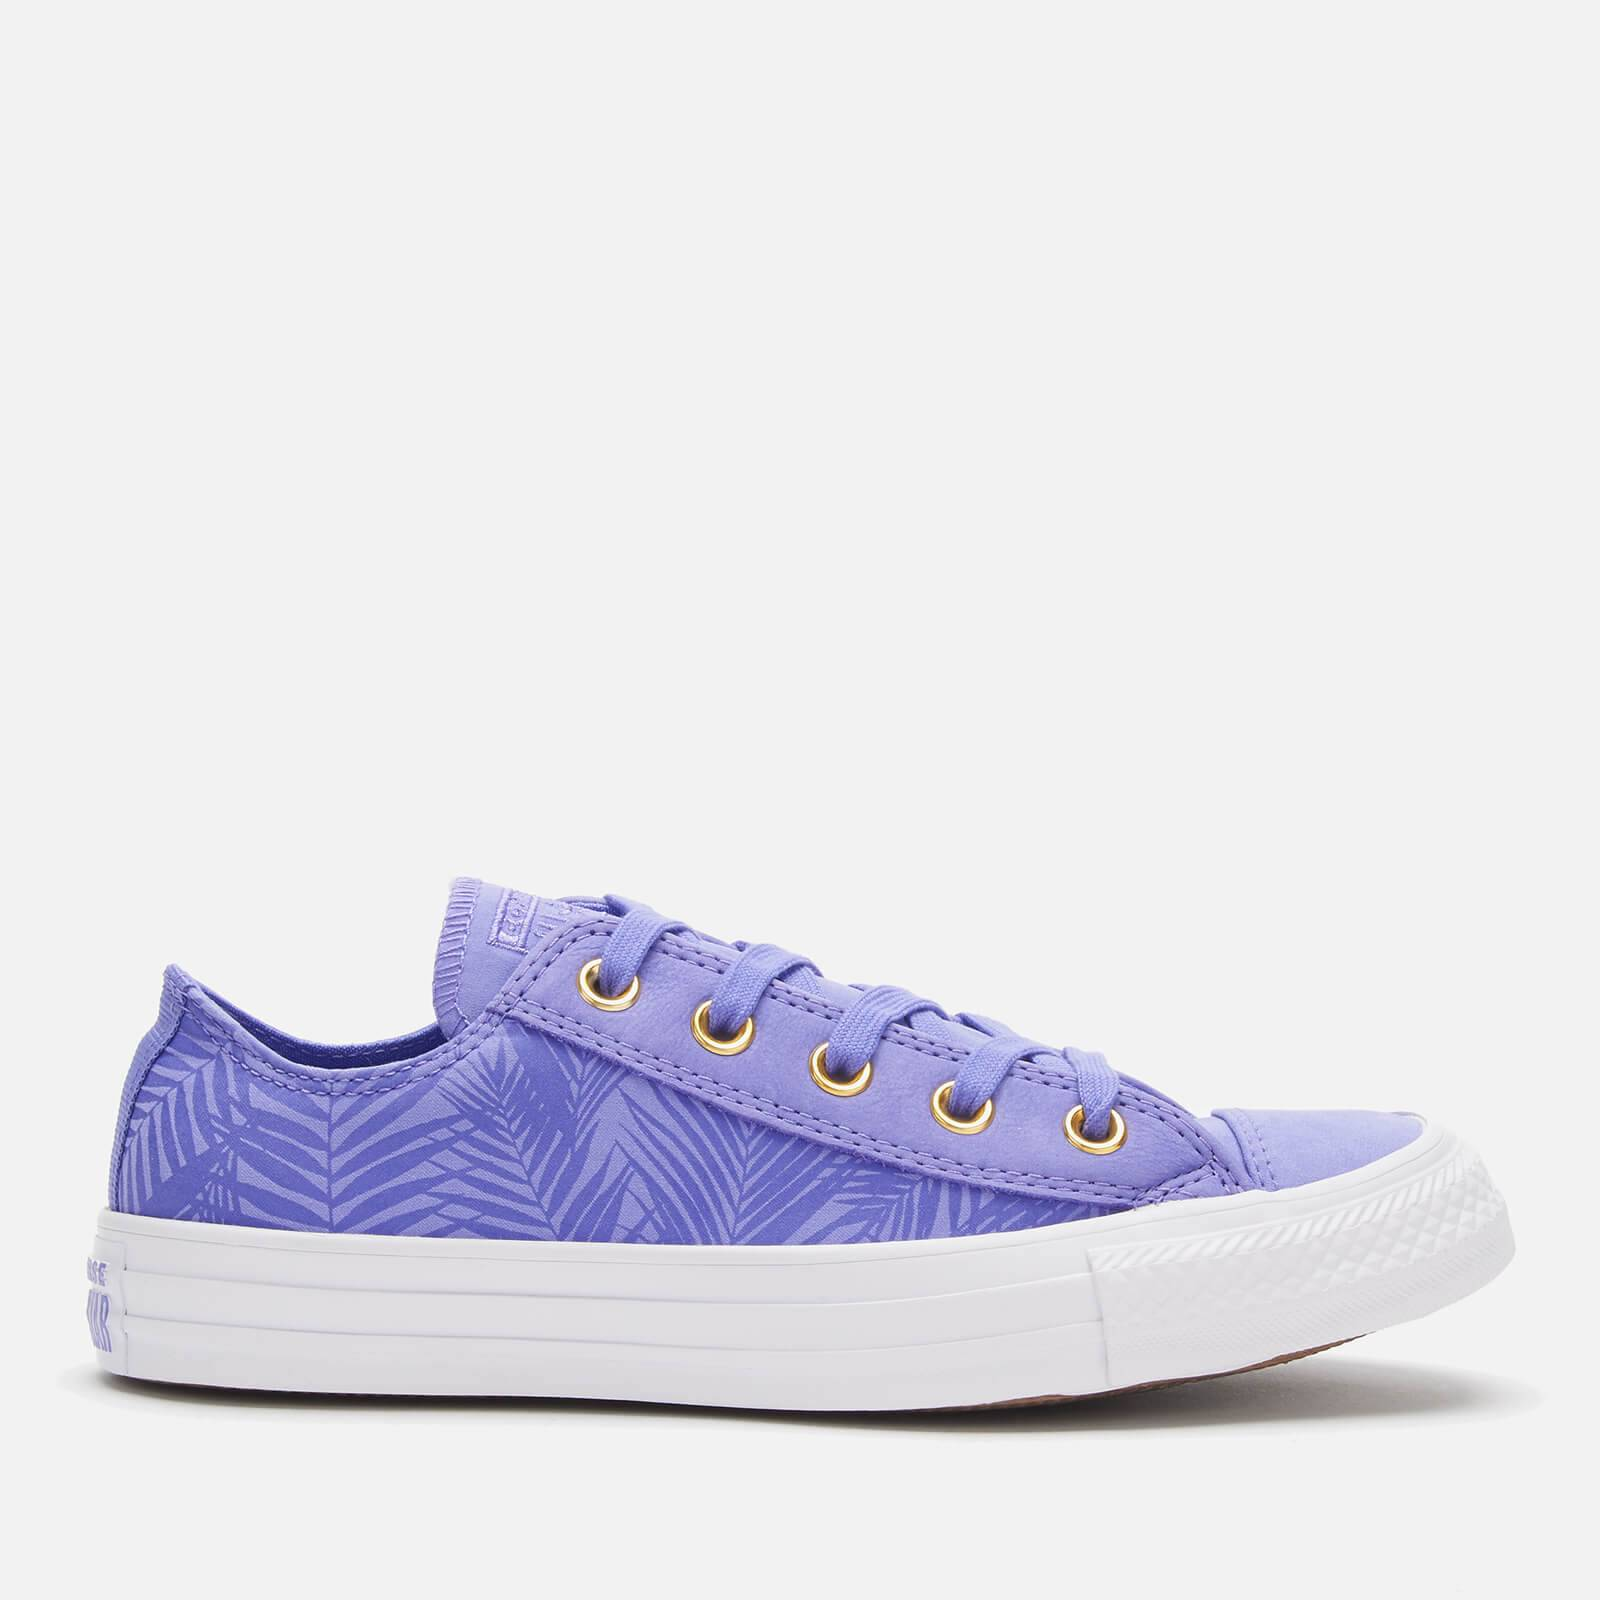 Converse Women's Chuck Taylor All Star Ox Trainers - Wild Lilac/Antique Brass/White - UK 6 - Purple